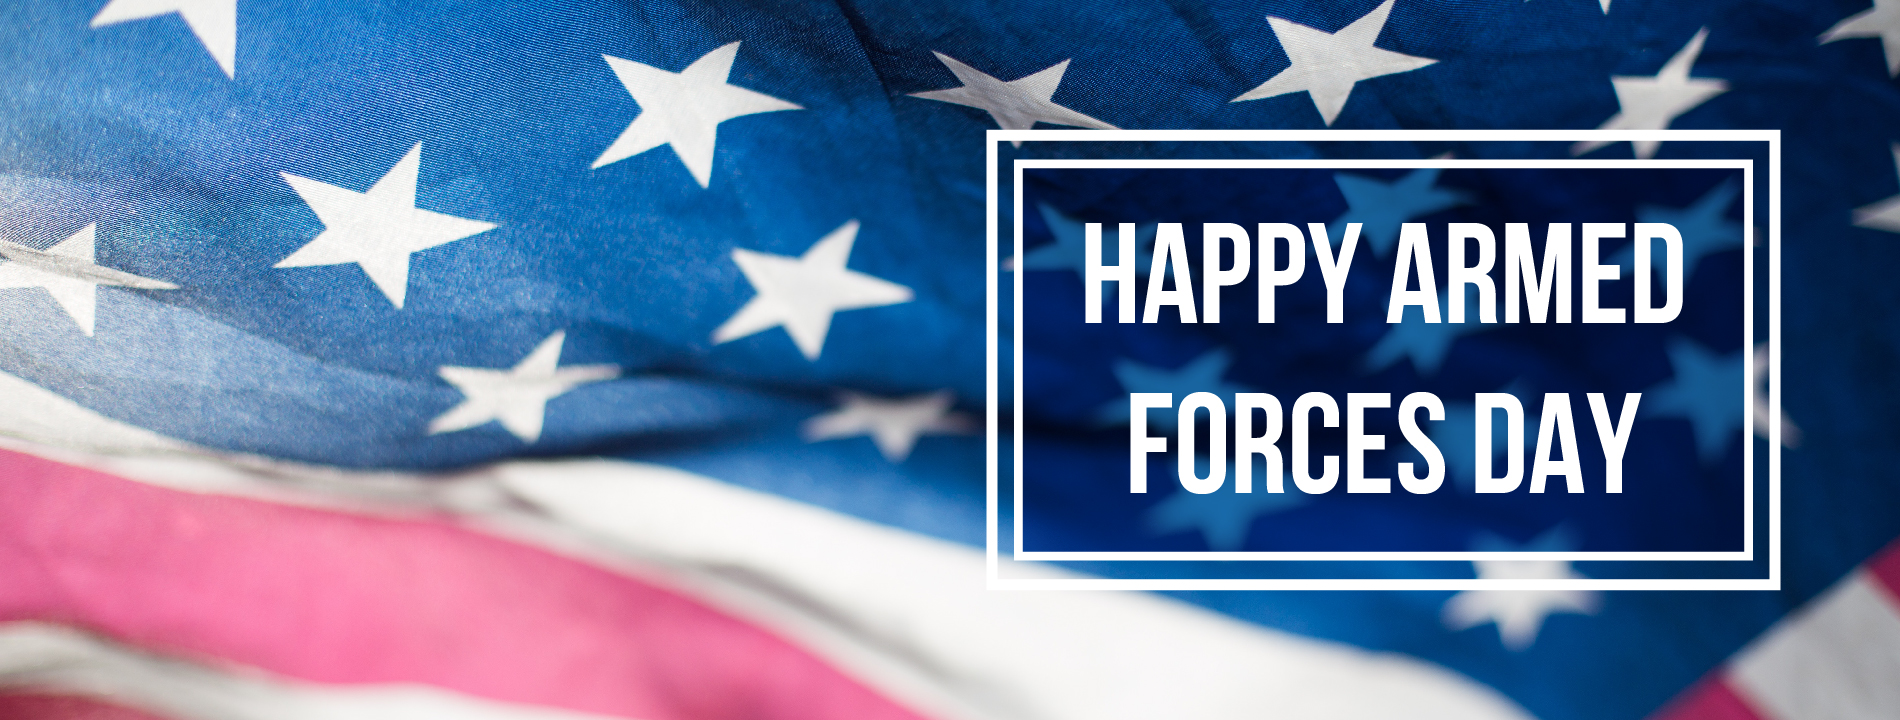 Happy Armed Forces Day